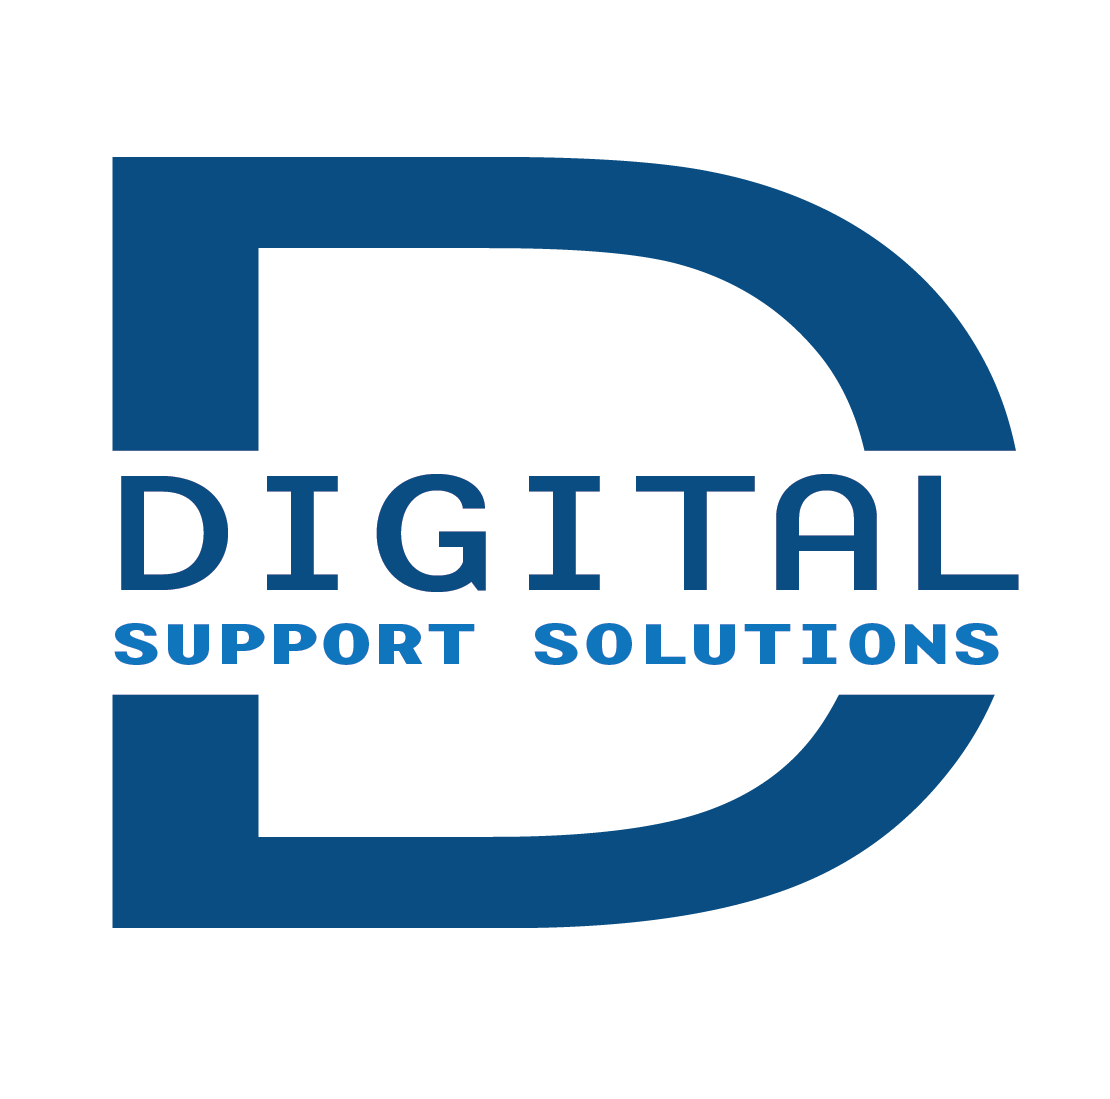 Digital Support Solutions